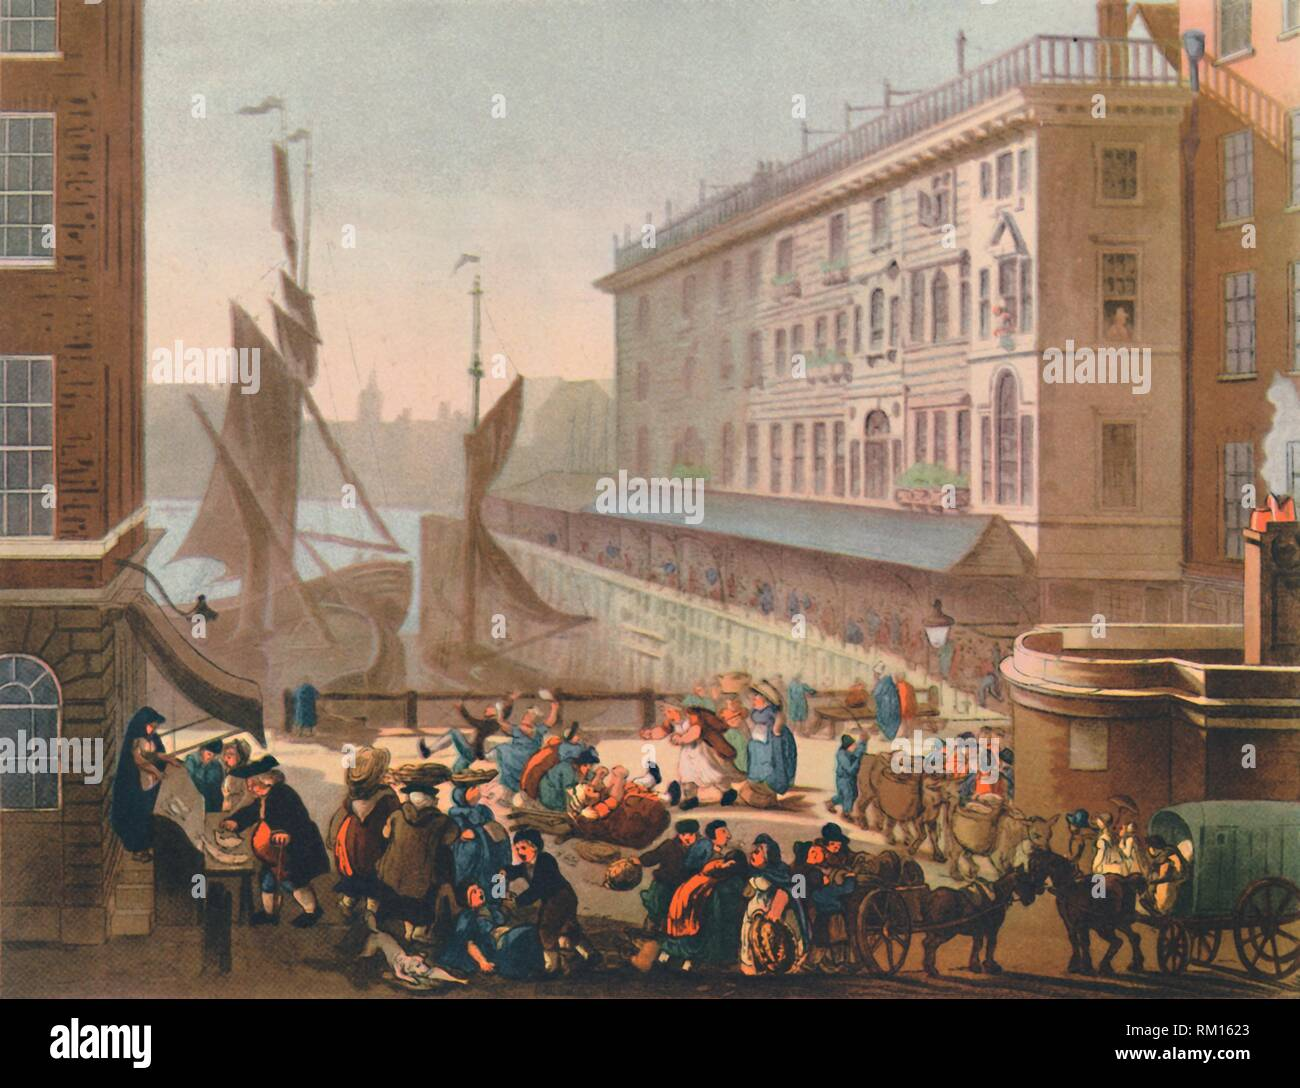 "'Billingsgate Fish Market', 1808, (1944). View of the 'old' open-air fish market on the banks of the River Thames in the City of London. Fresh fish was landed and sold directly on the dockside. The market opened at 4 o'clock each morning, attracting all-night revellers, and was famous for the coarse language used by the female workers - two women can be seen fighting in the foreground. Previously published in ""Microcosm of London"". From ""The English At Table"", by John Hampson. [William Collins, London, 1944] - Stock Image"